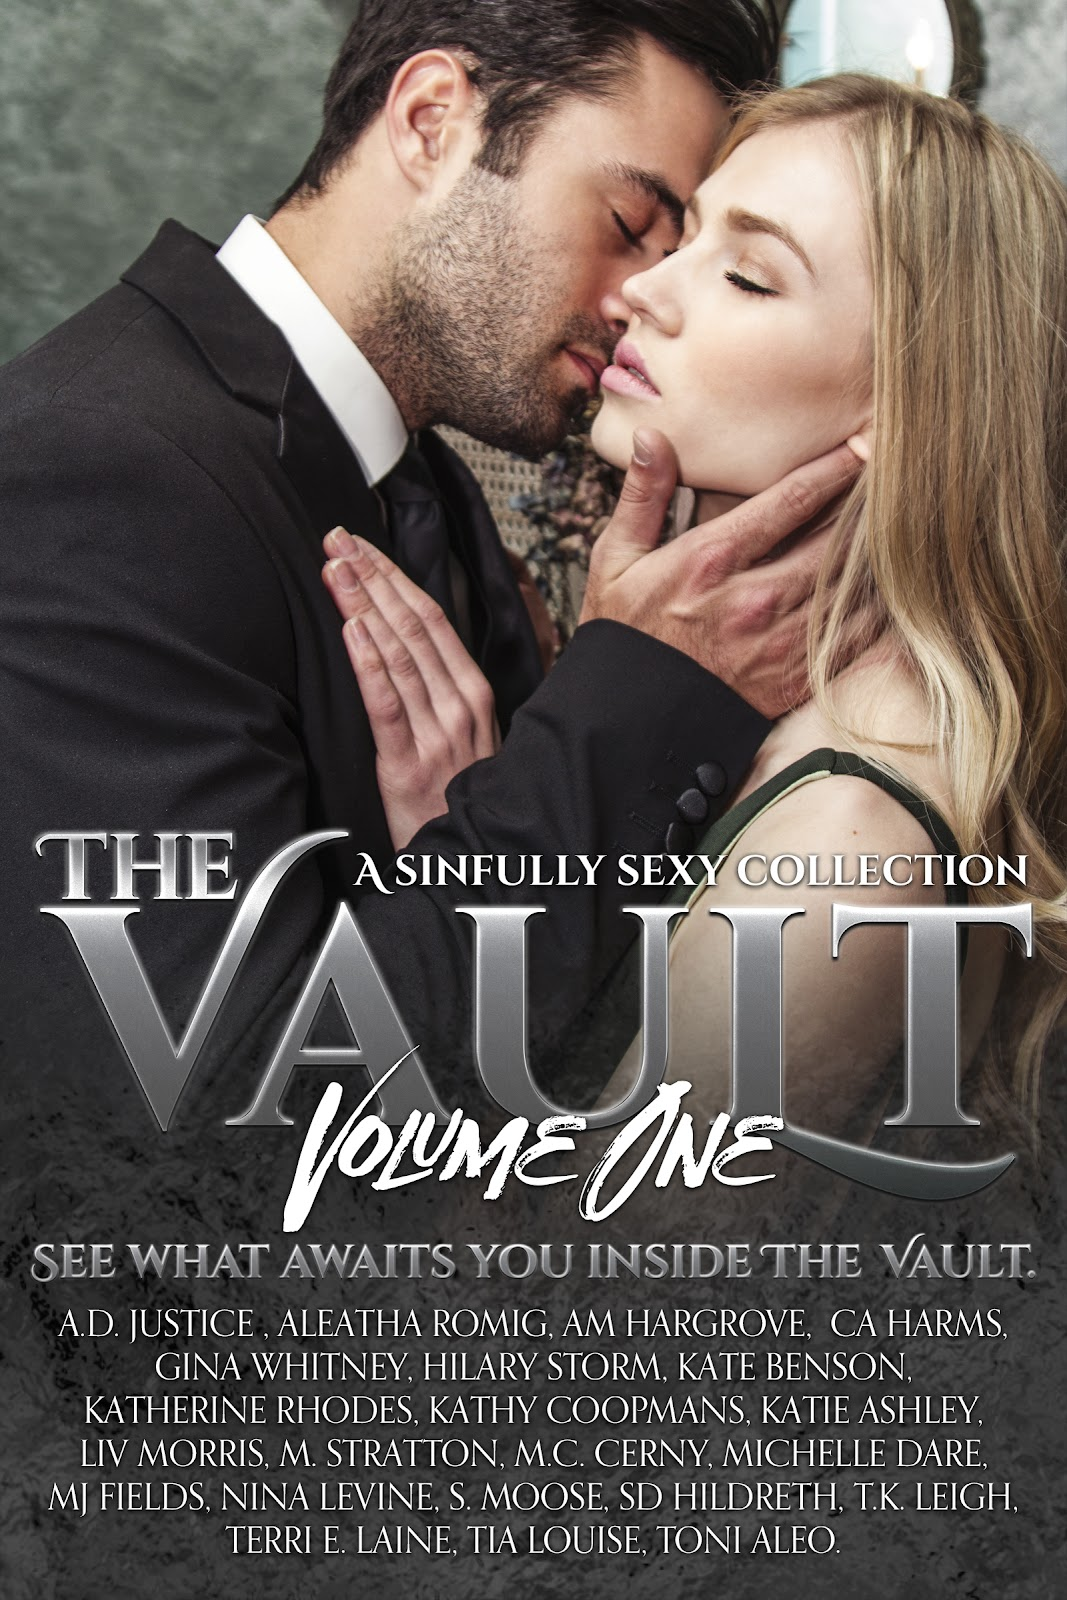 The Vault Vol 1 eBook[2].jpg